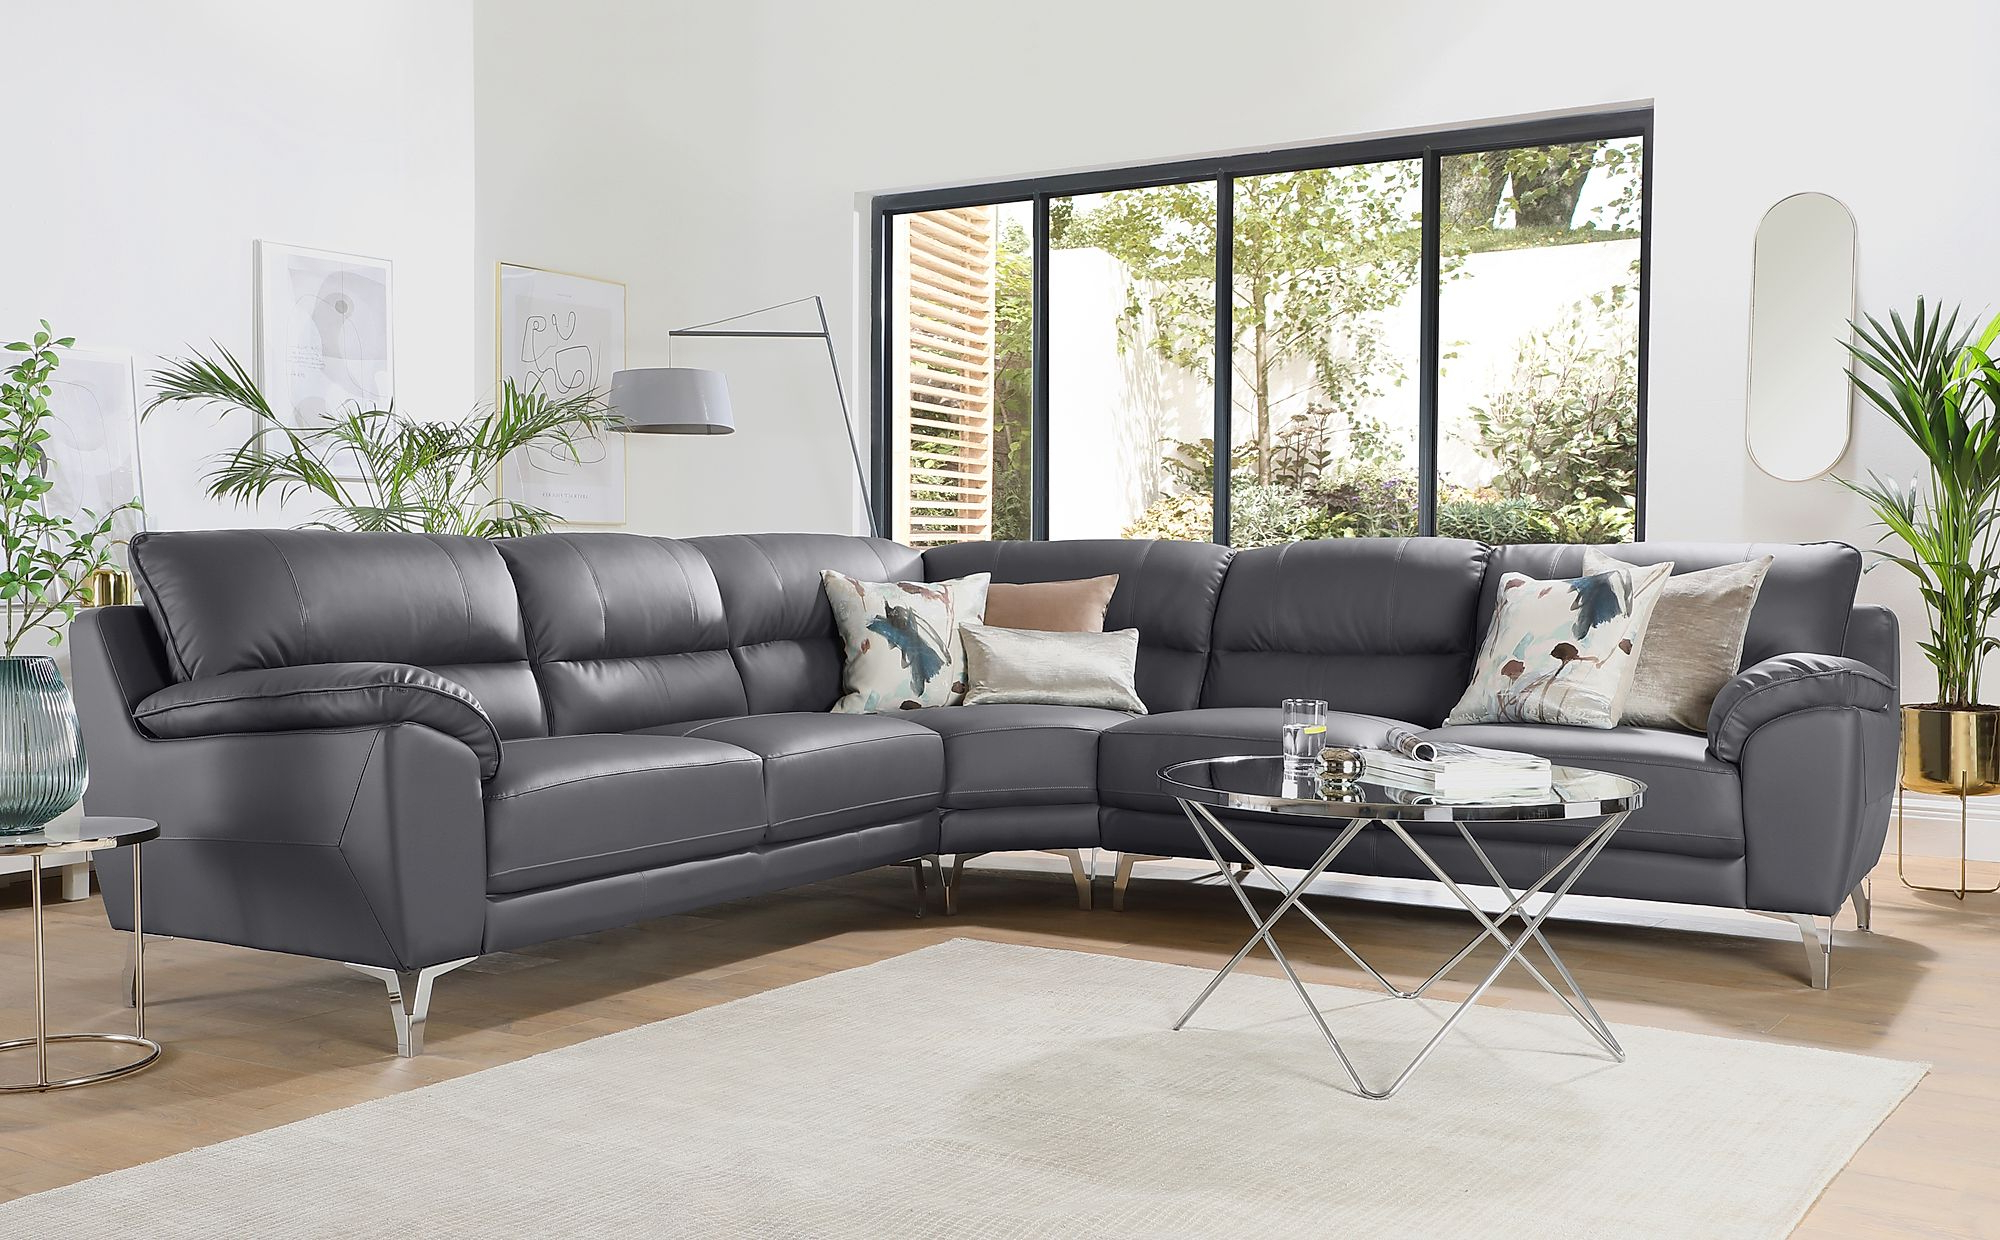 Gray Sofas Intended For Most Up To Date Madrid Grey Leather Corner Sofa (View 1 of 20)